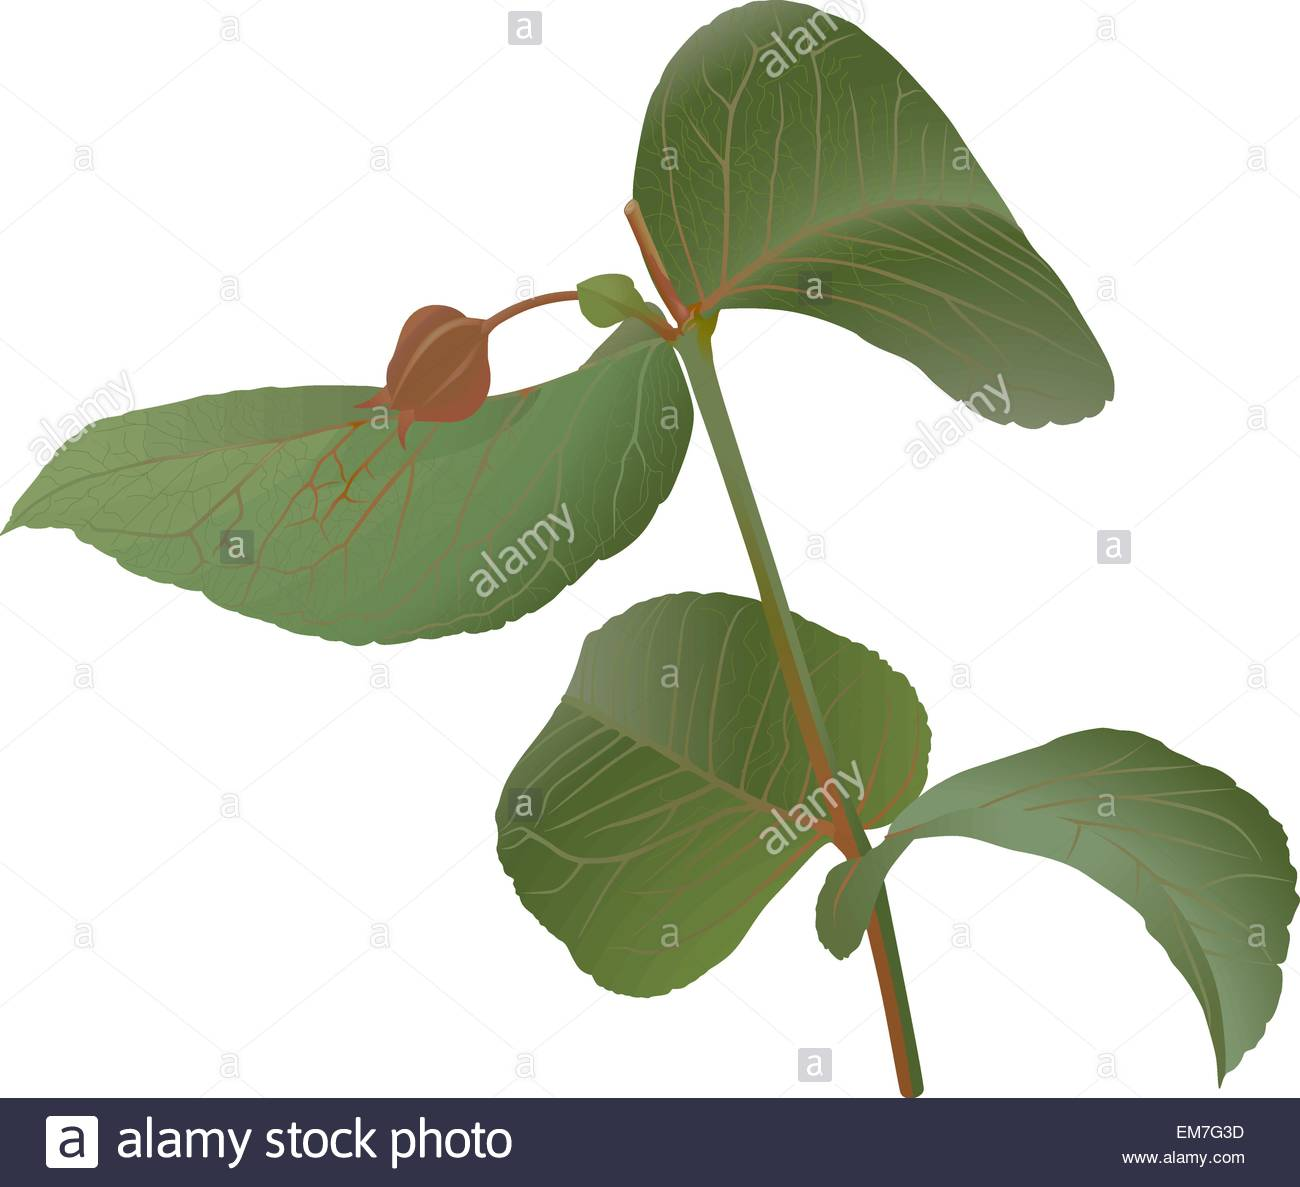 Eucalyptus - Stock Vector